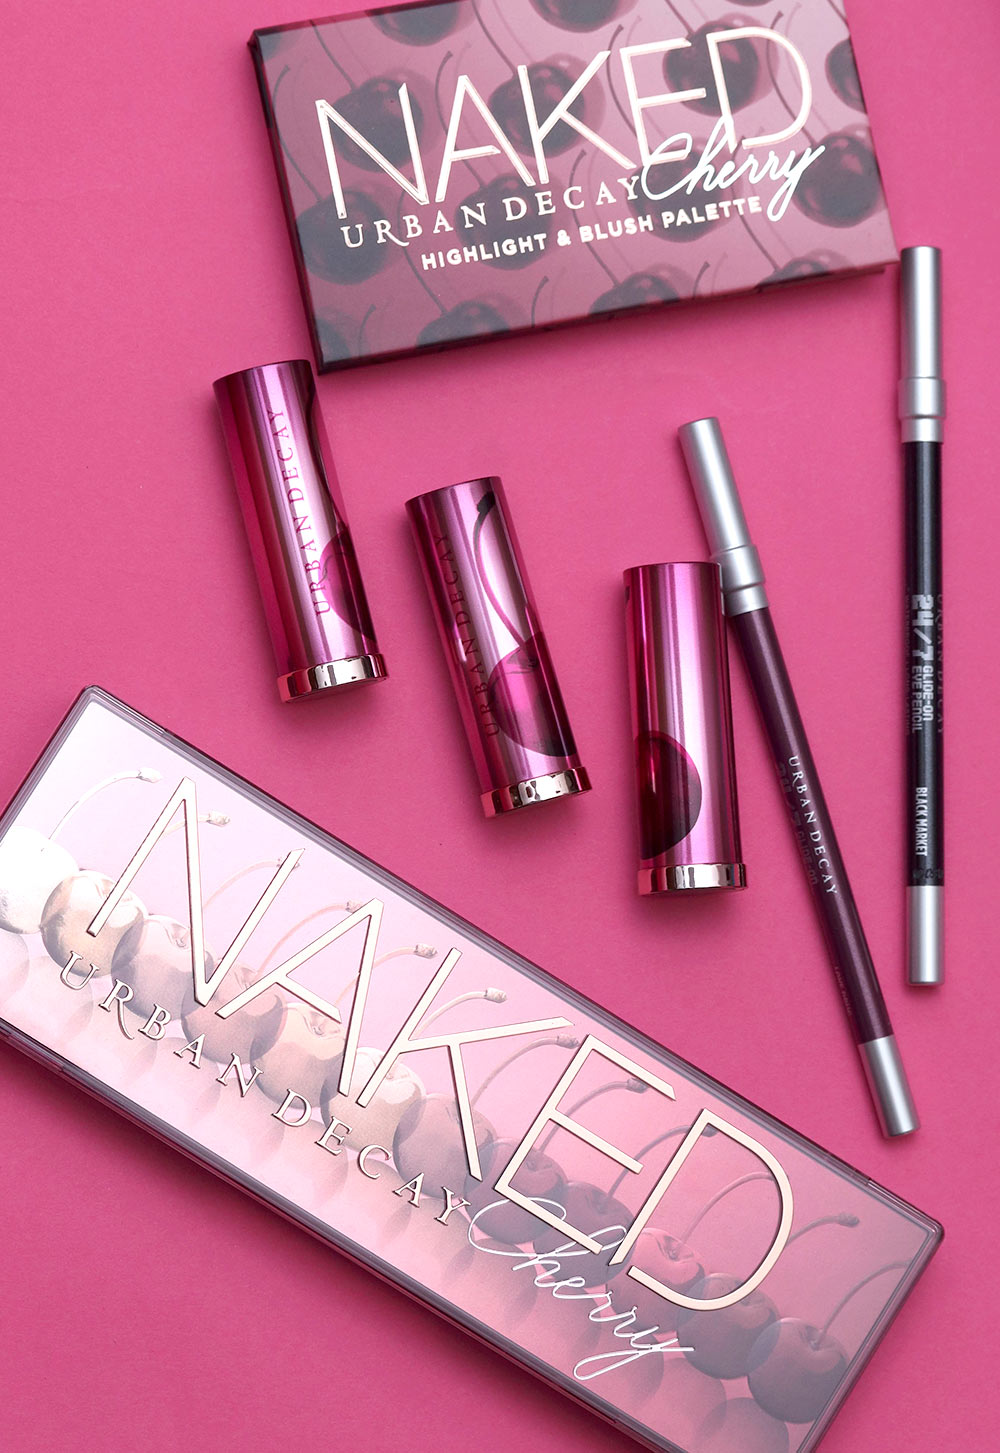 urban decay naked cherry collection packaging